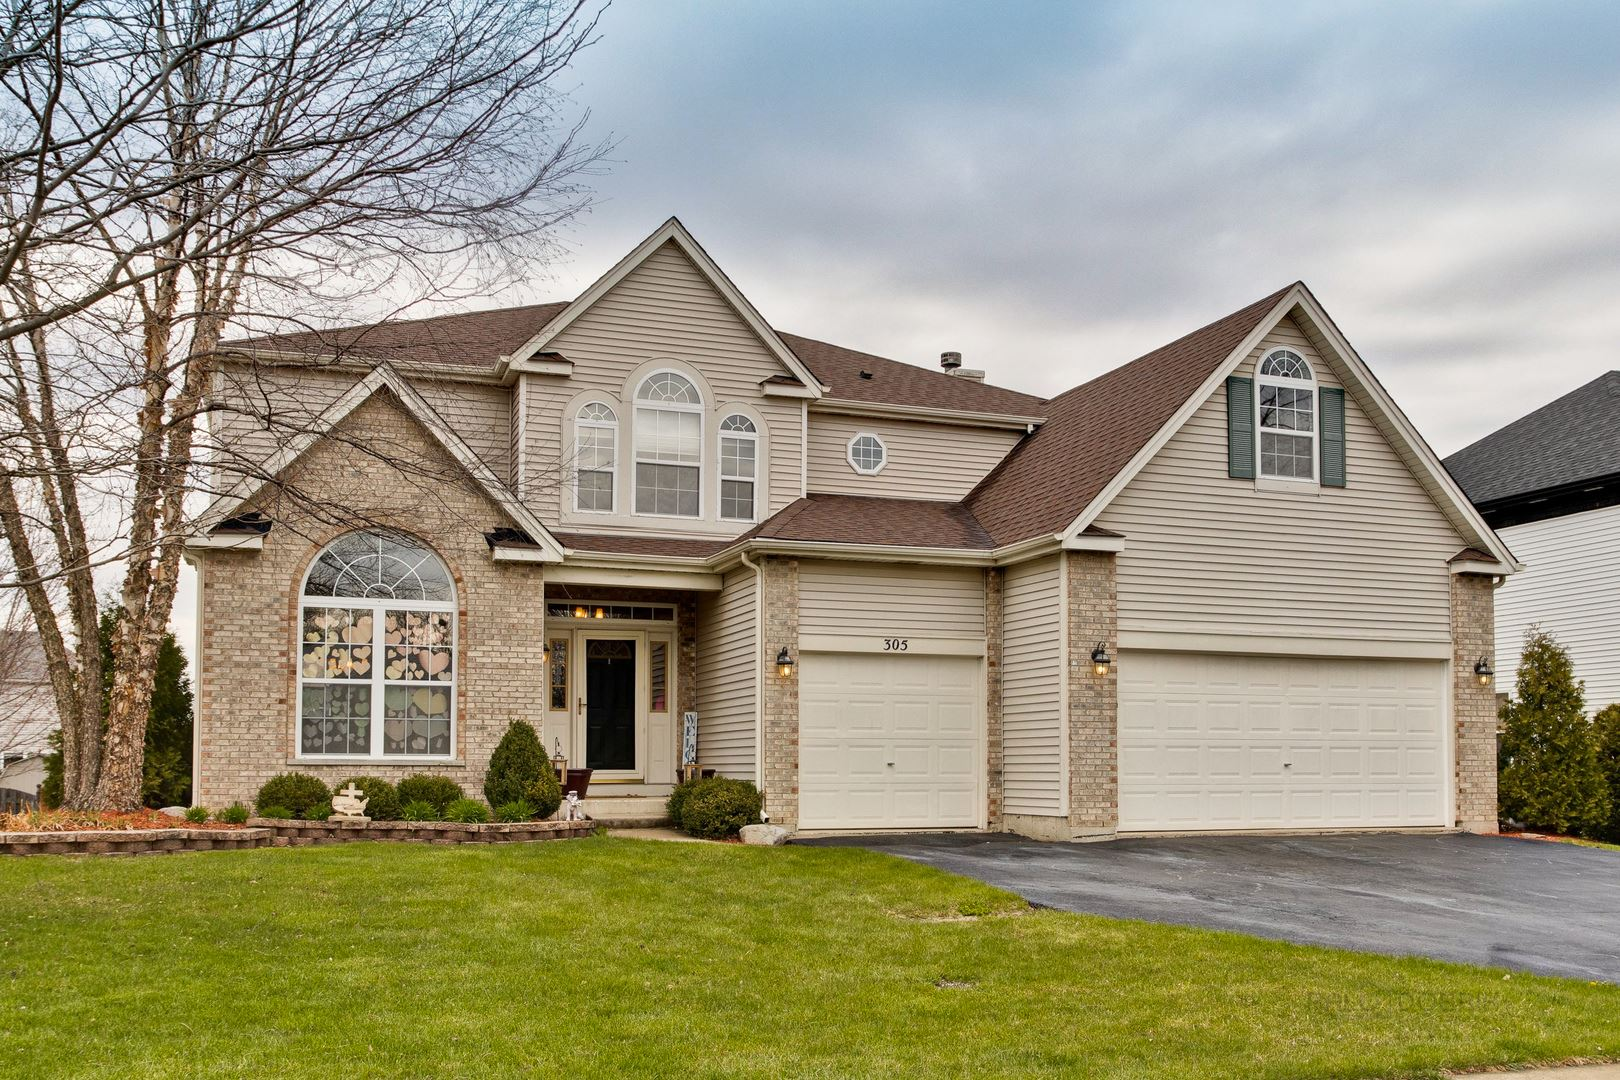 305 Greenview Lane, Lake Villa, IL 60046 - #: 10700466